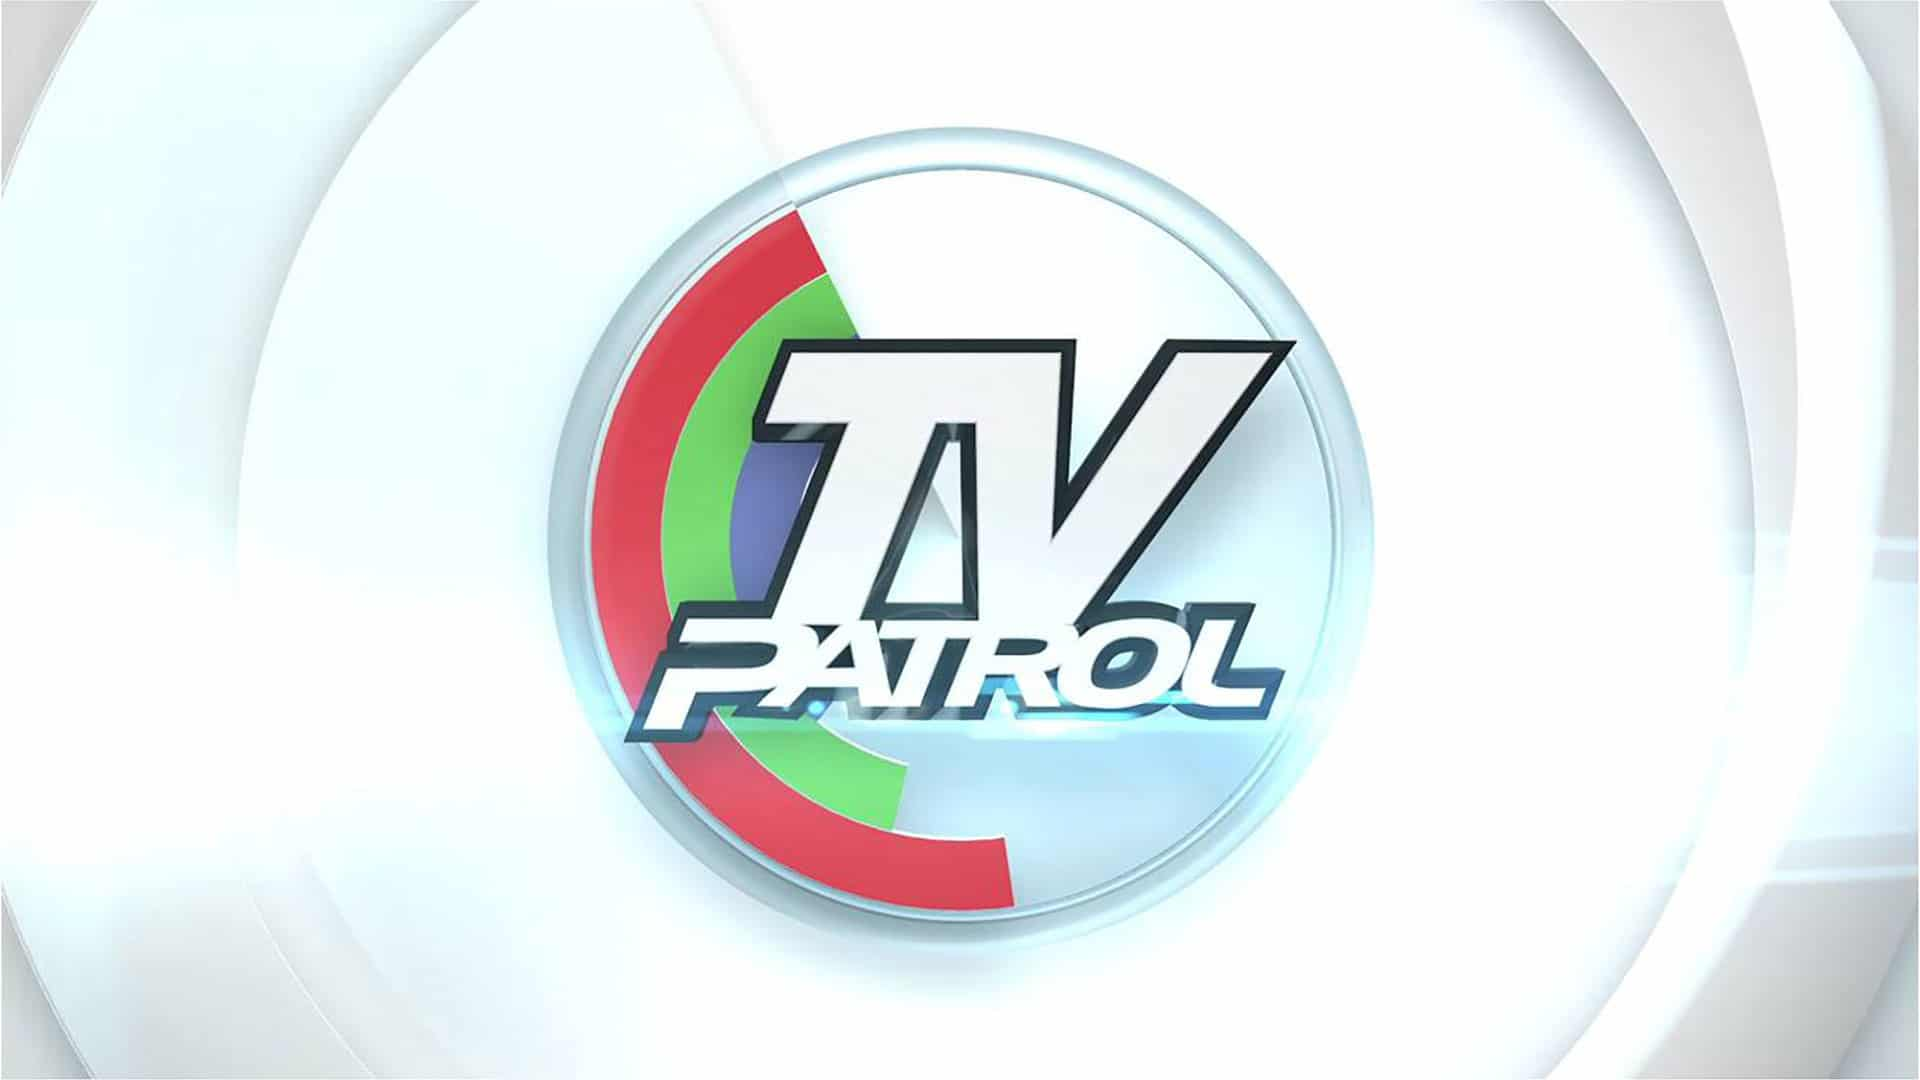 TV patrol logo